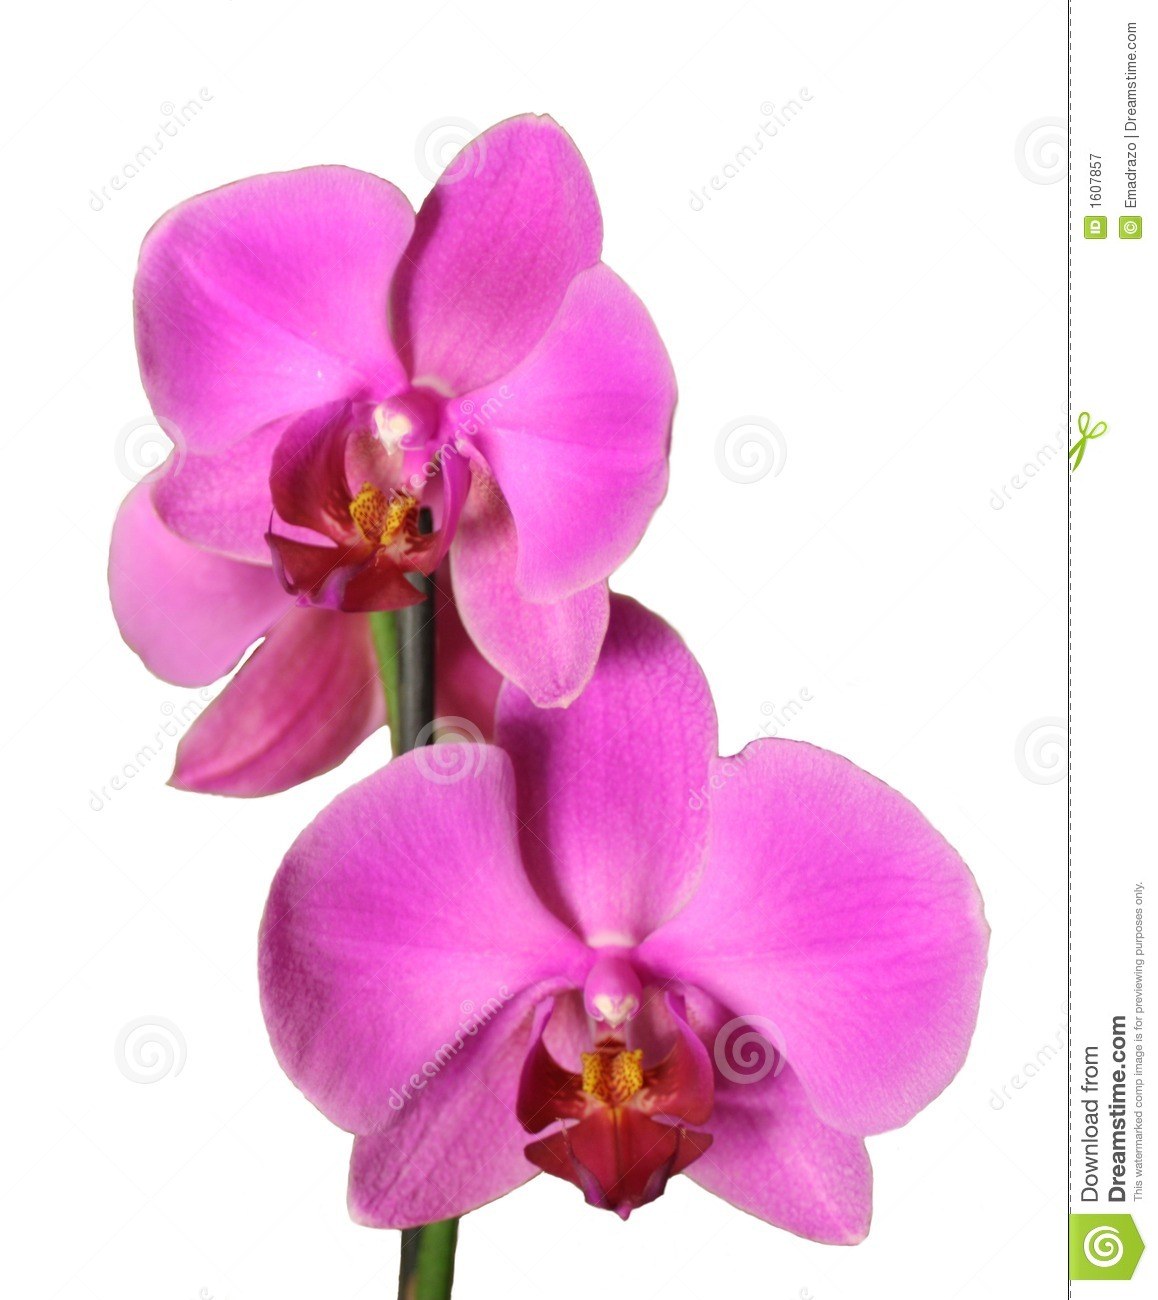 How to Start an Orchid Garden to Sell in Market